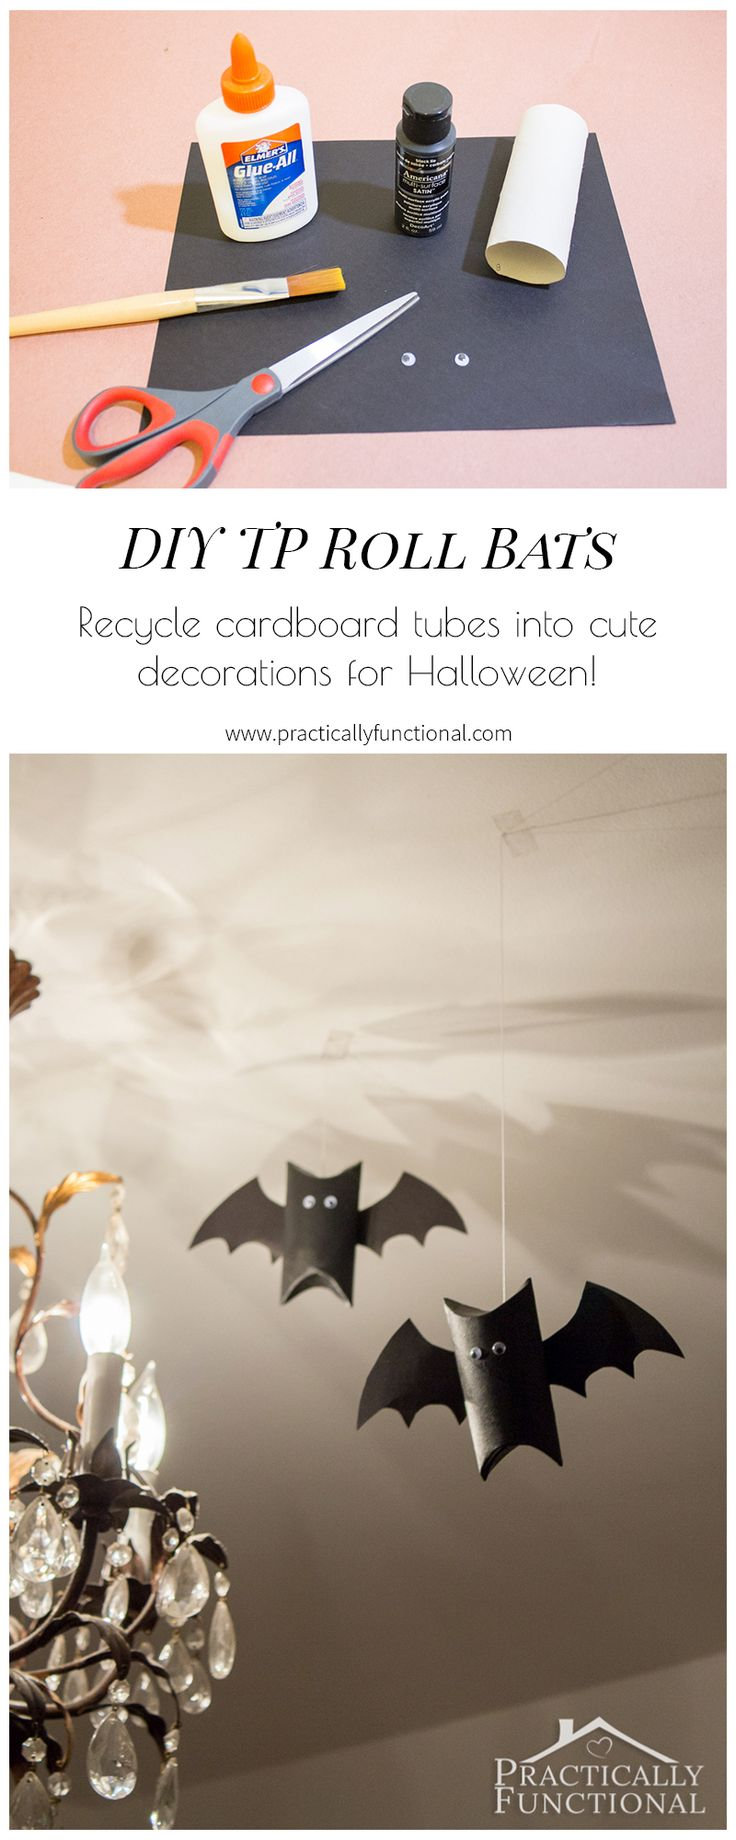 Diy halloween decorations bats - Toilet Paper Roll Bats Are The Perfect Quick And Easy Halloween Decor Or Use Them As Halloween Treat Boxes